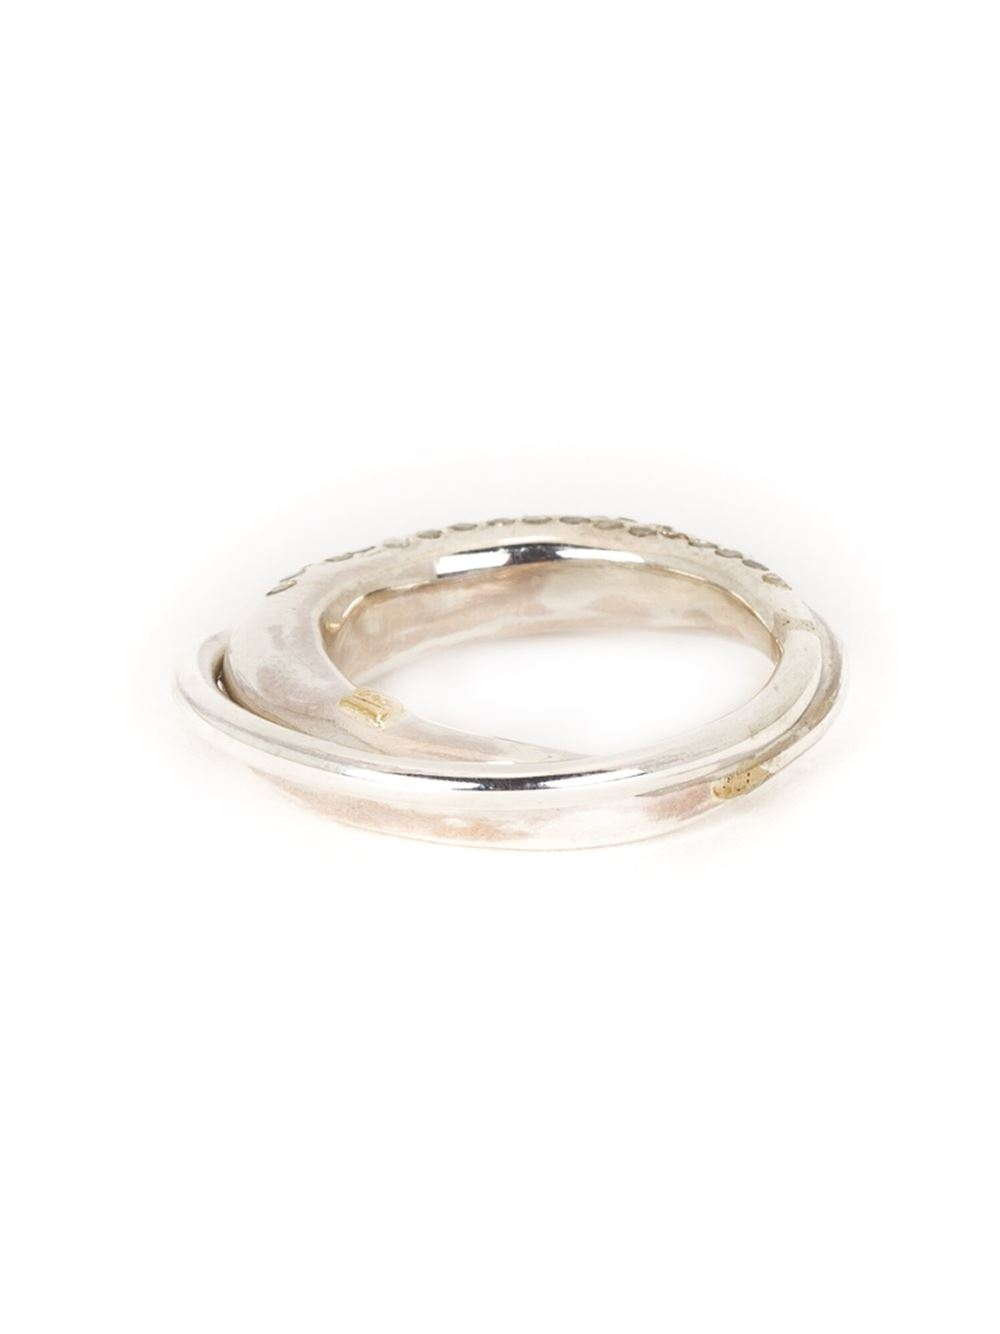 Rosa Maria diamond circular ring - Metallic 2rAcGW7HX